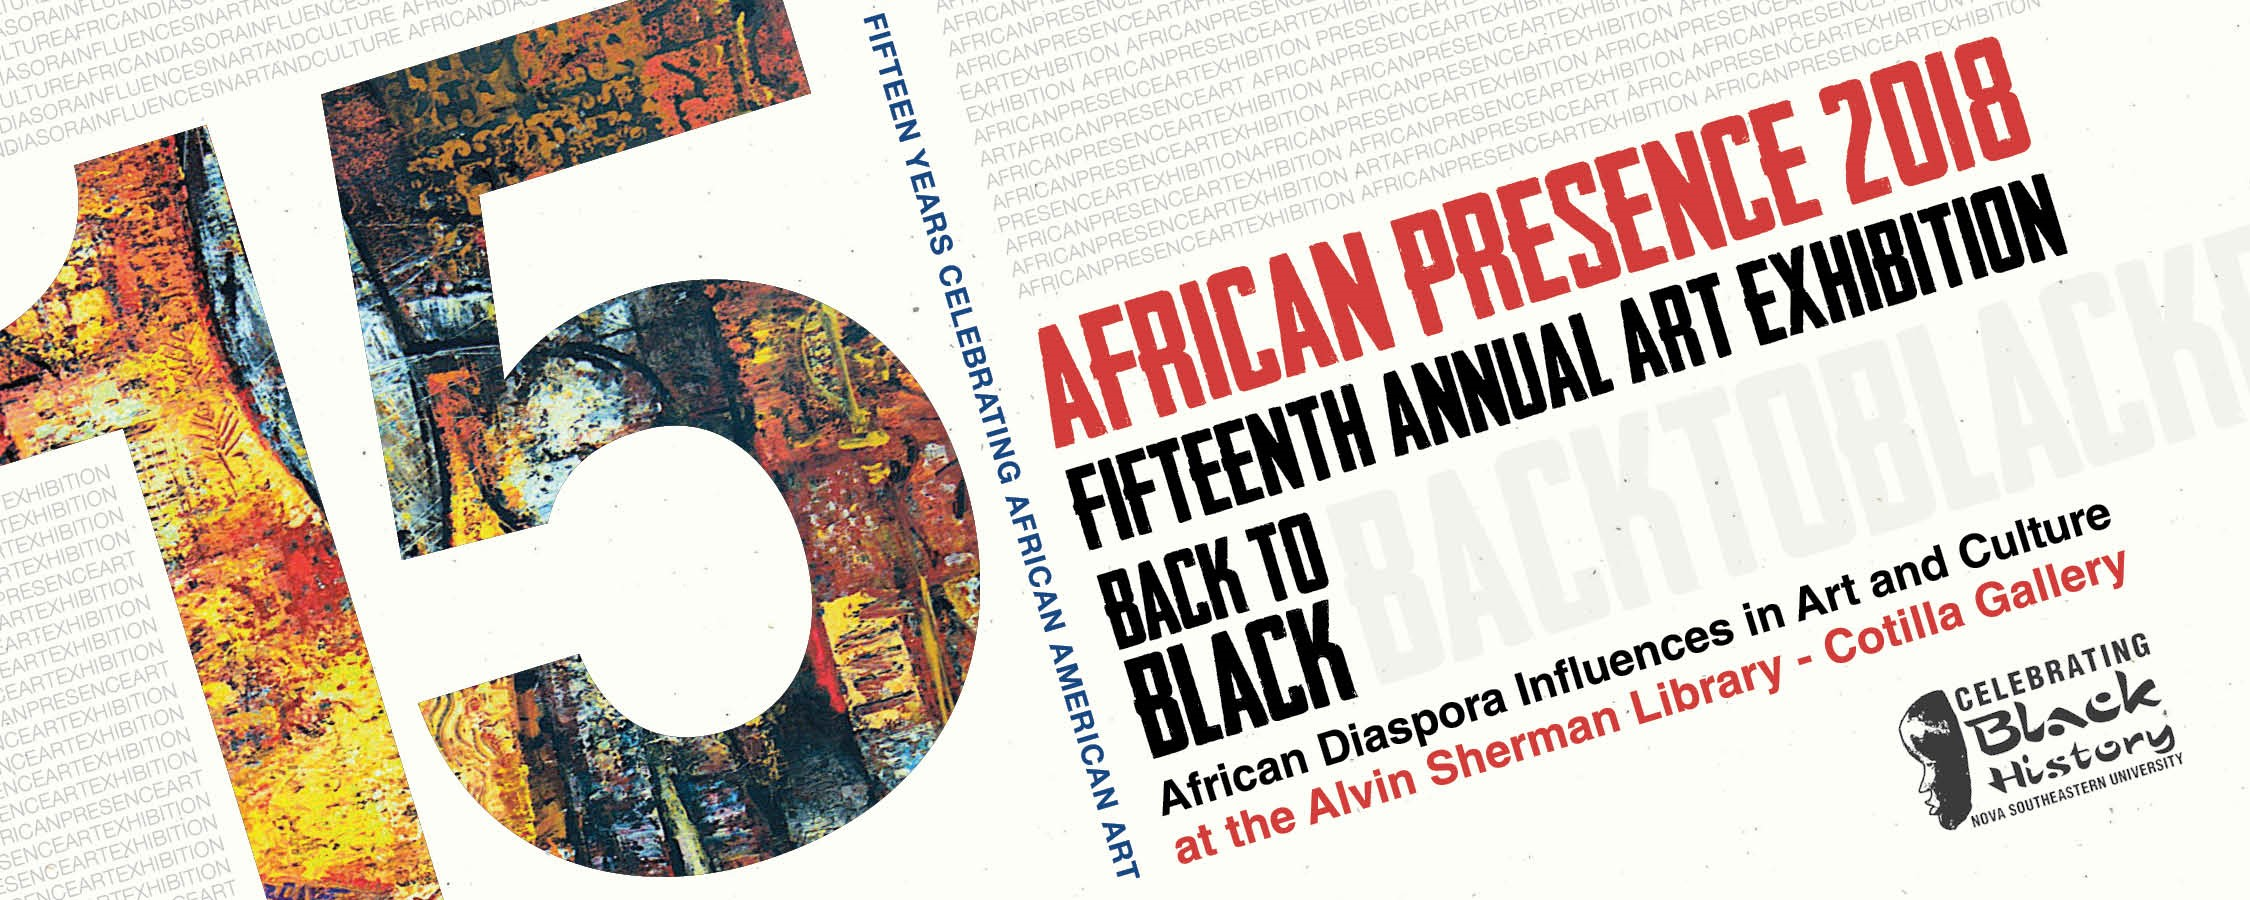 Opening Reception of the 15th Annual African Presence Art Exhibition